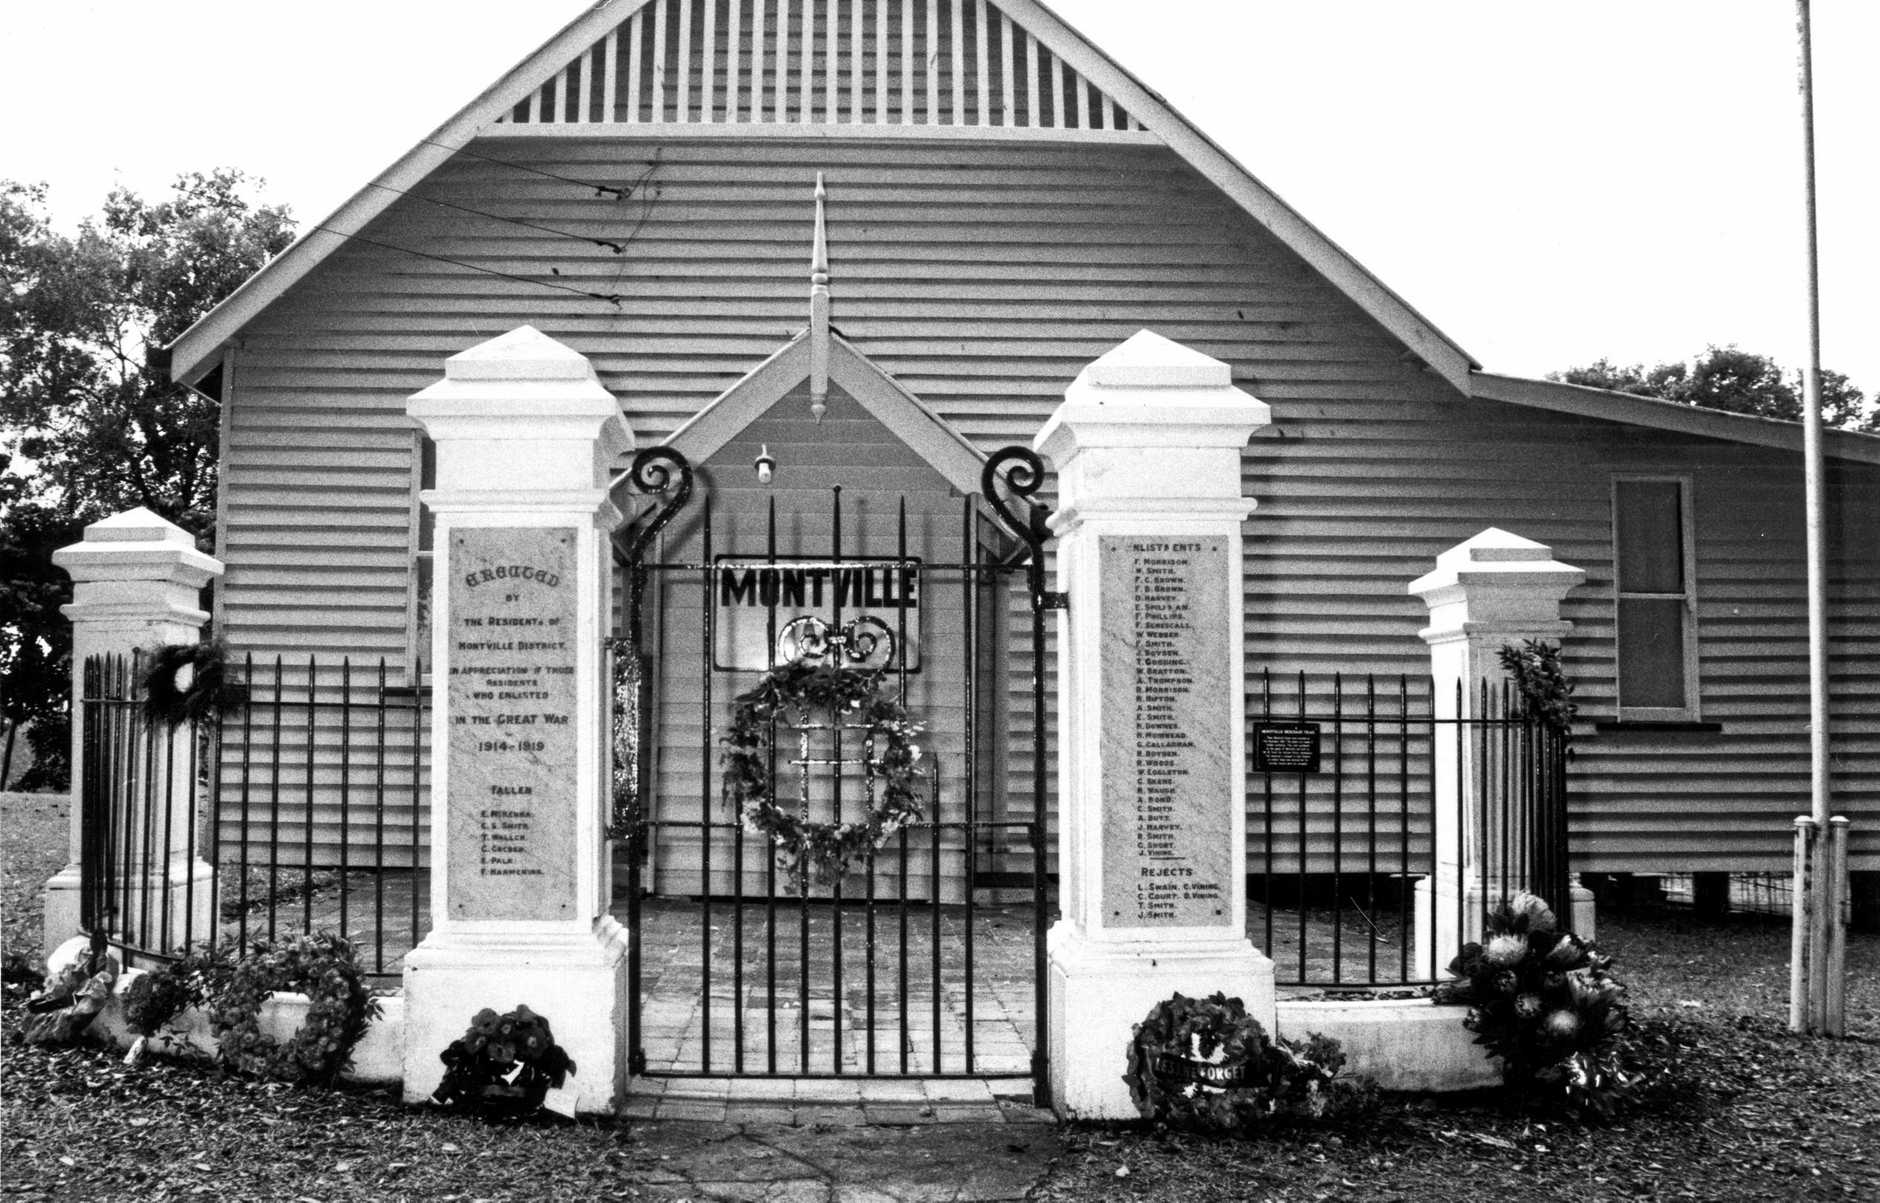 The Montville Hall and Memorial Gates - just one of the many memorials built across Australia after World War I.